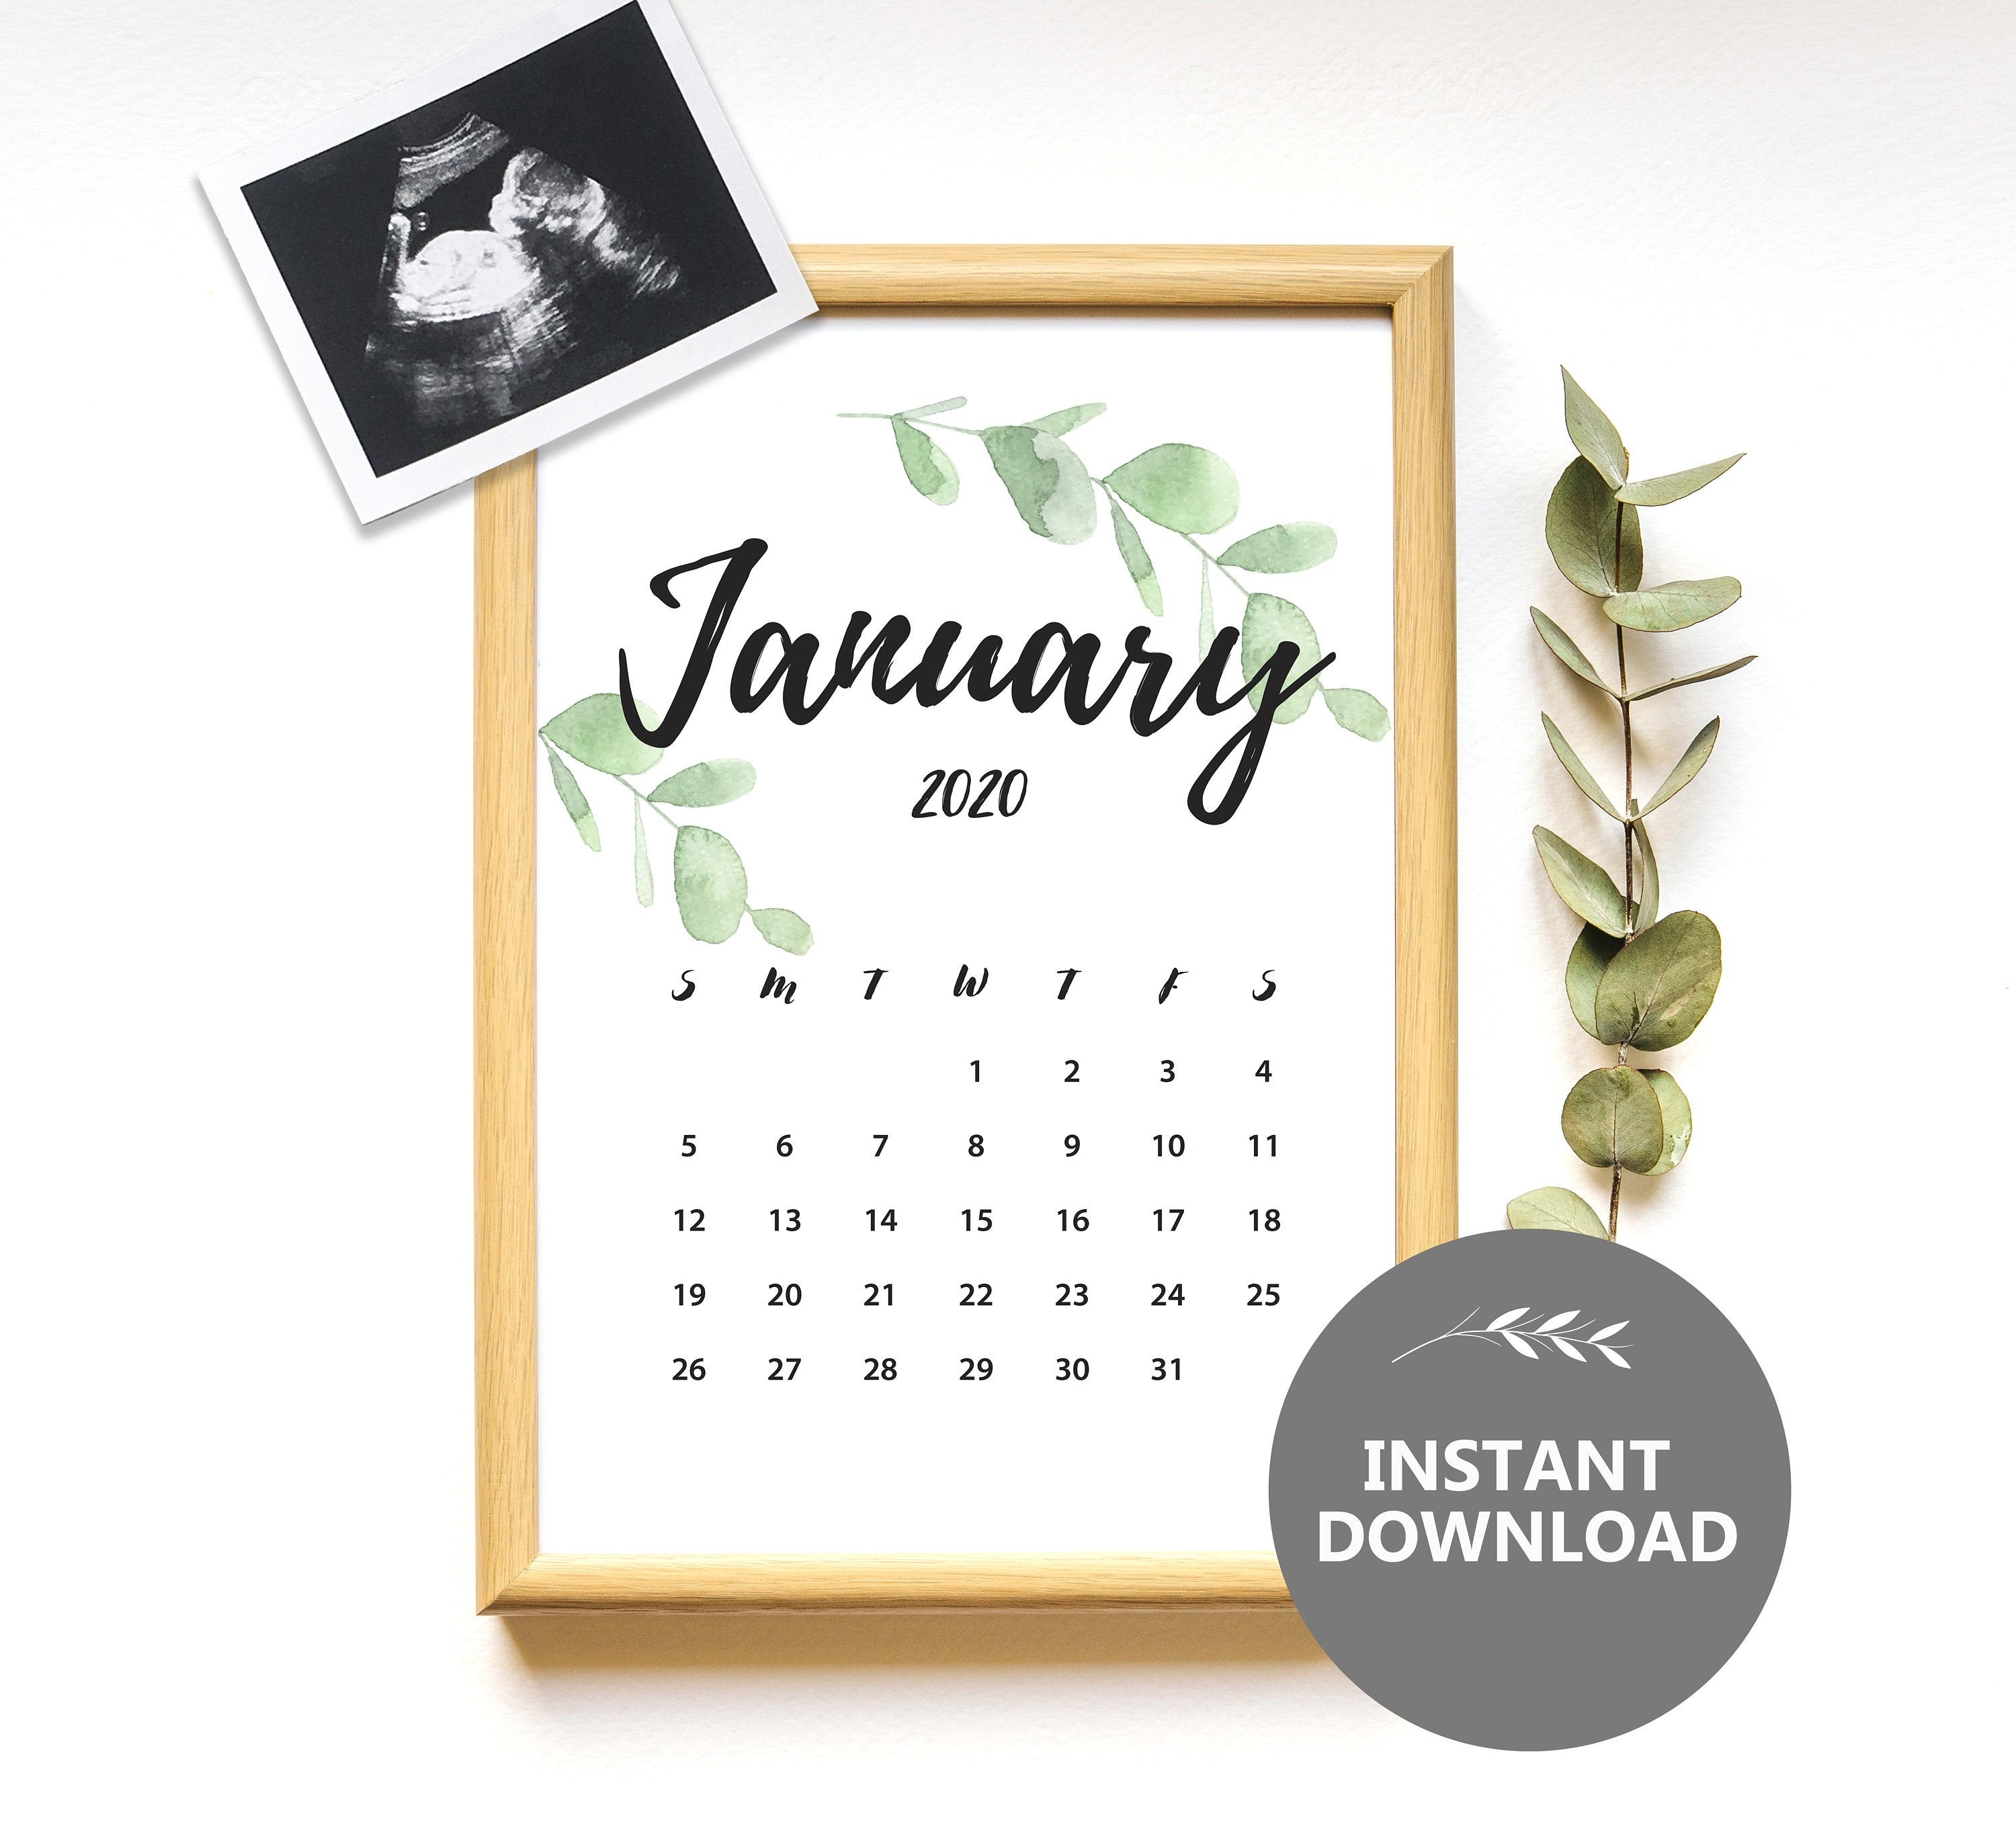 January 2020 Calendar, Instant Download, Pregnancy Announcement, Monthly  Calendar Planner, Baby Due Date Printable Calendar-January 2020 Style 3 Calendar